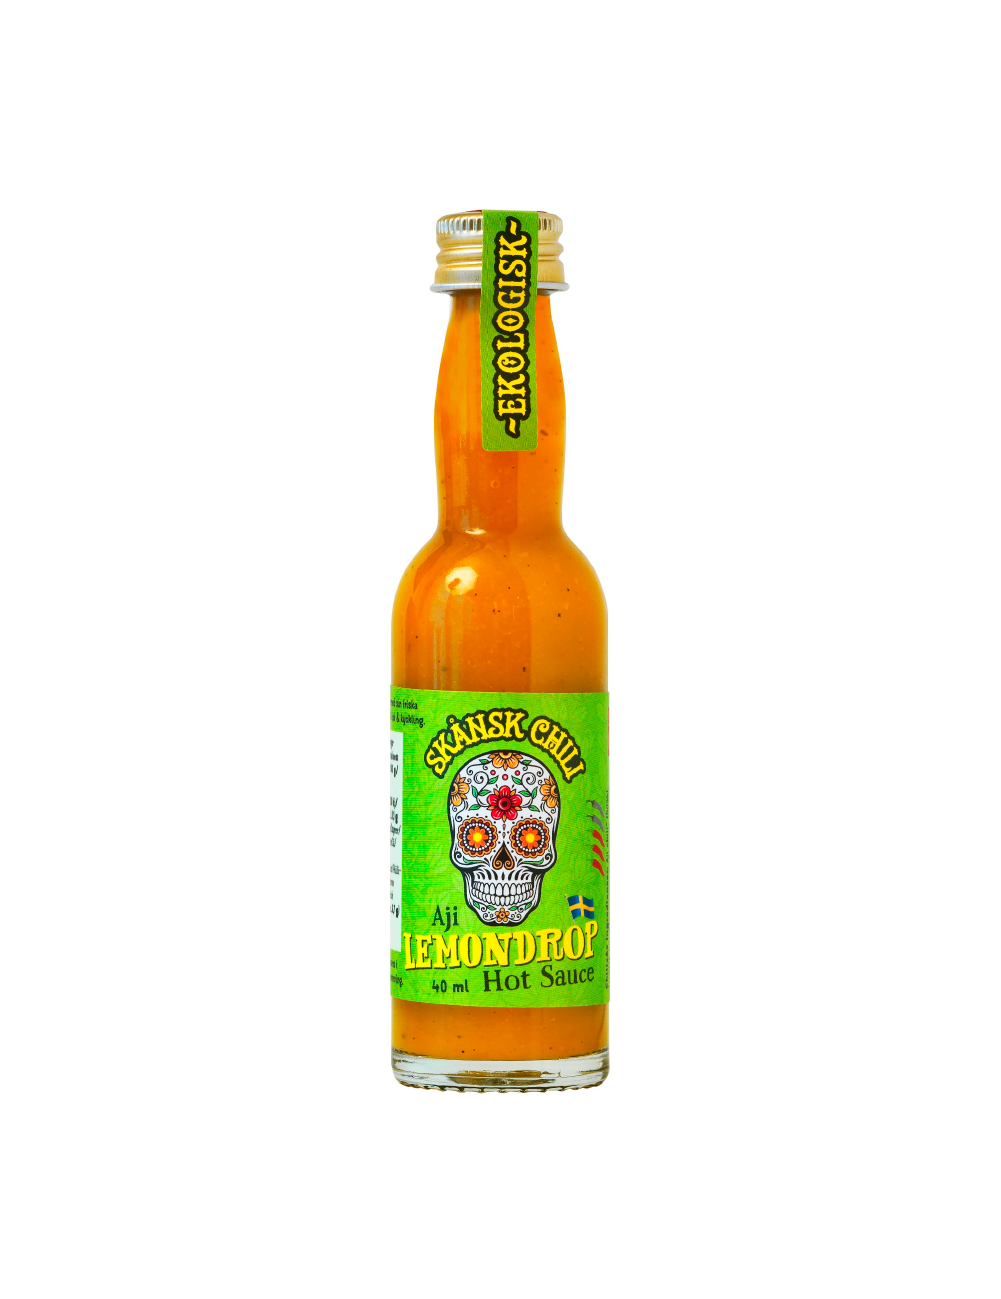 Aji Lemondrop Hot Sauce - 12 x 40ml